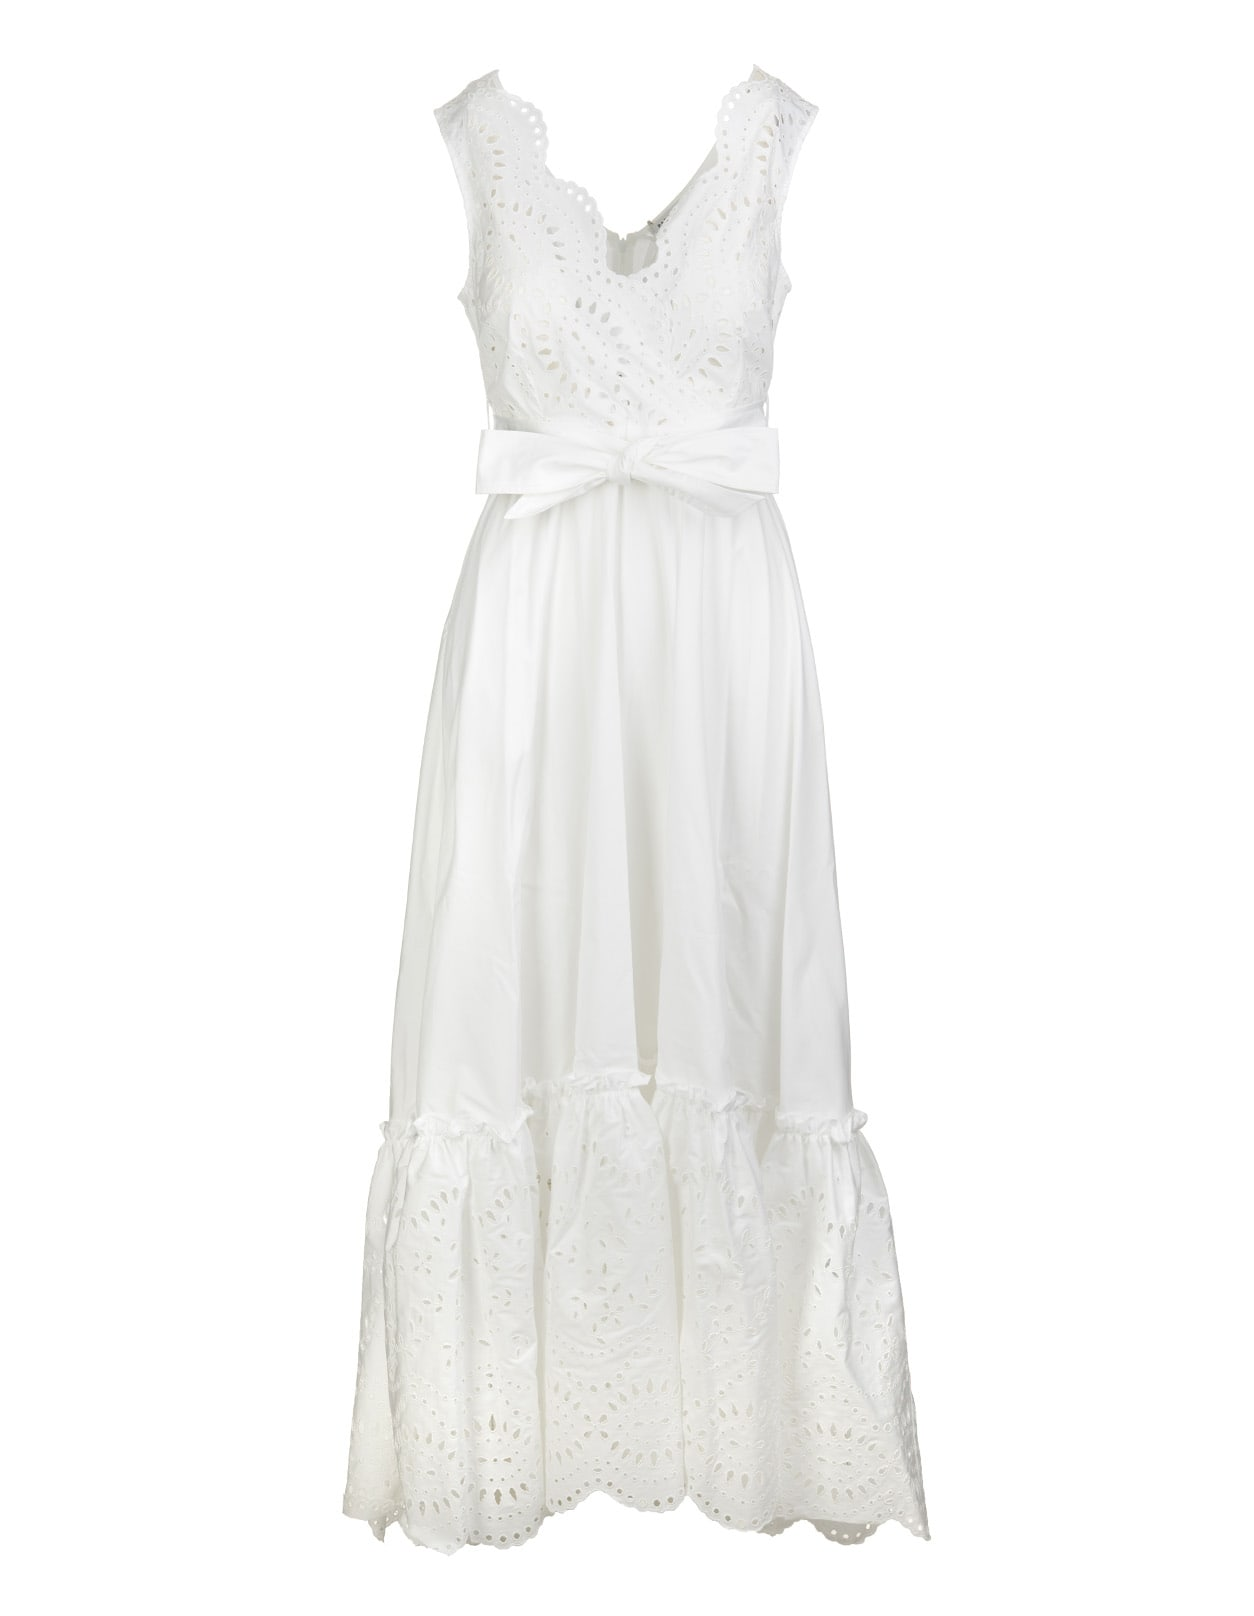 Long White Broderie-anglaise Dress